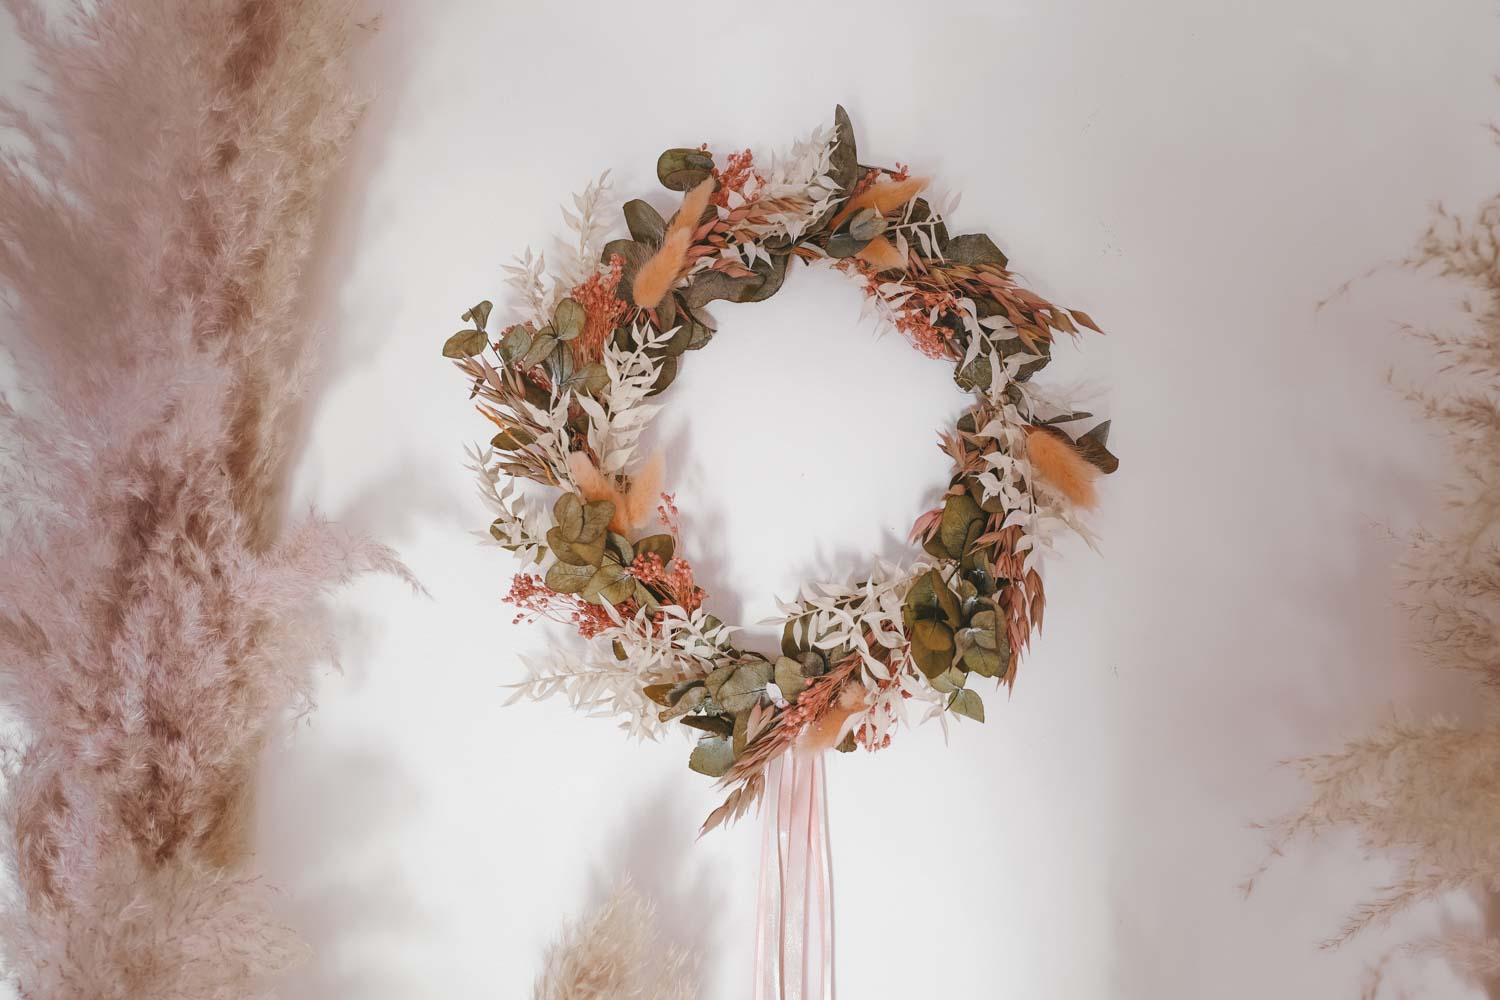 Handmade Dried Flower Hoop Cersei